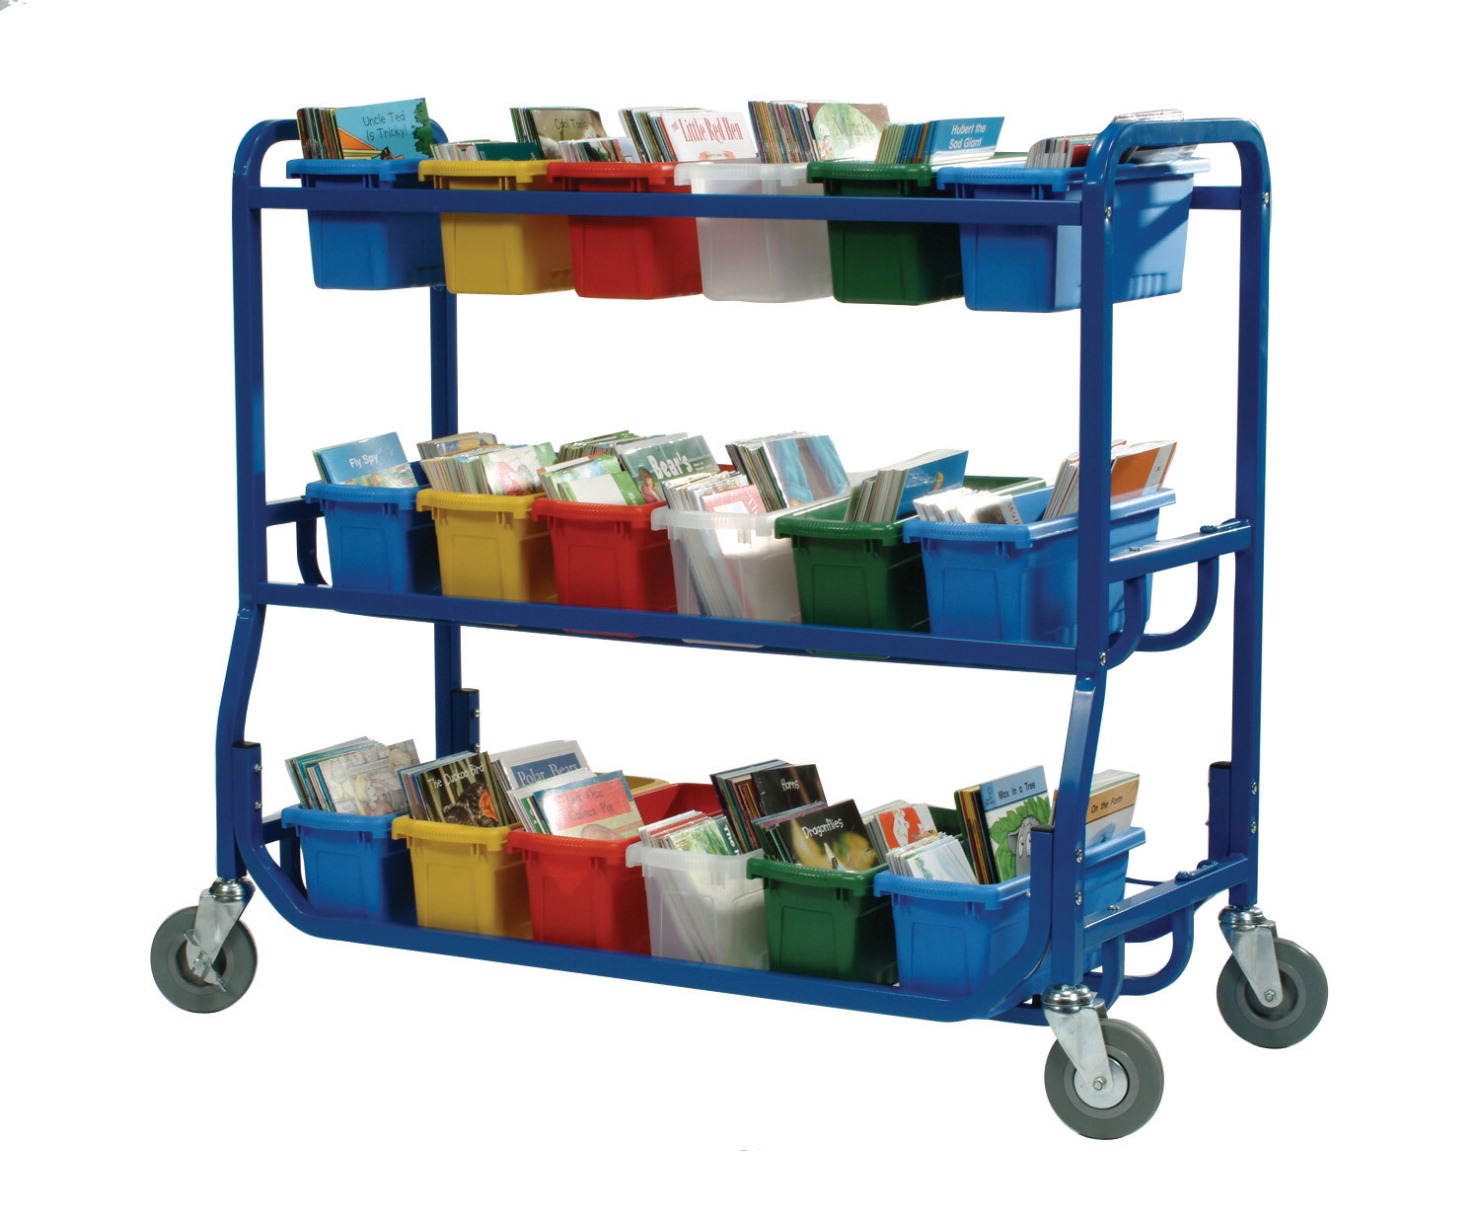 Copernicus Library on Wheels With 18 Small Tubs